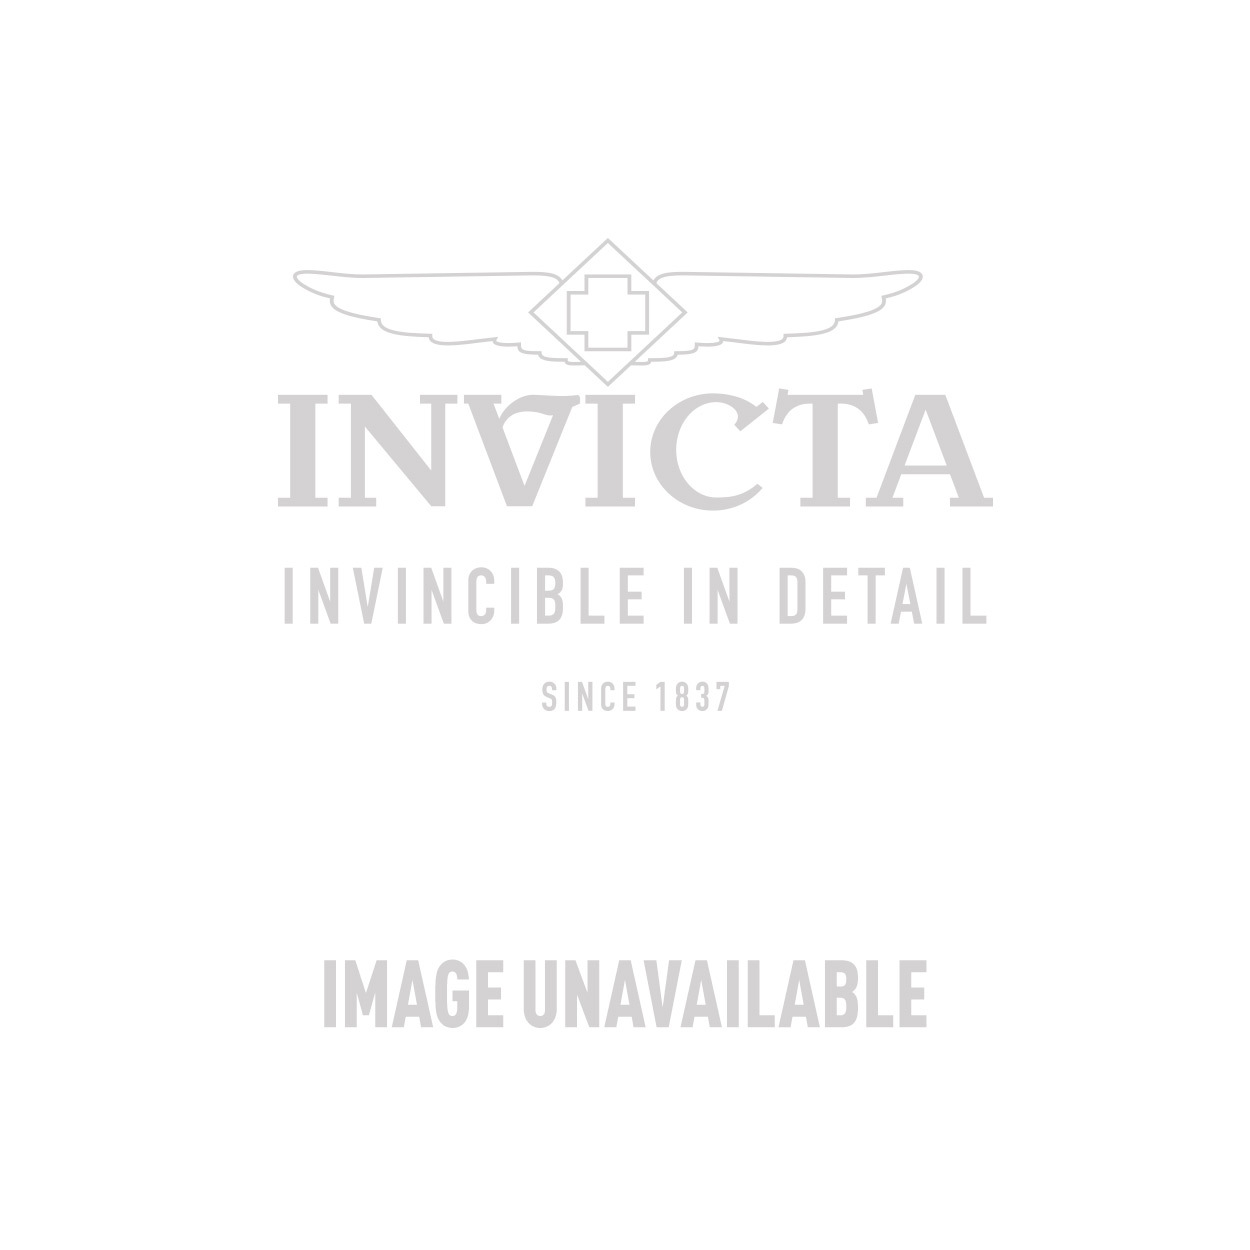 Invicta Specialty Swiss Movement Quartz Watch - Rose Gold case with Black tone Leather band - Model 12124